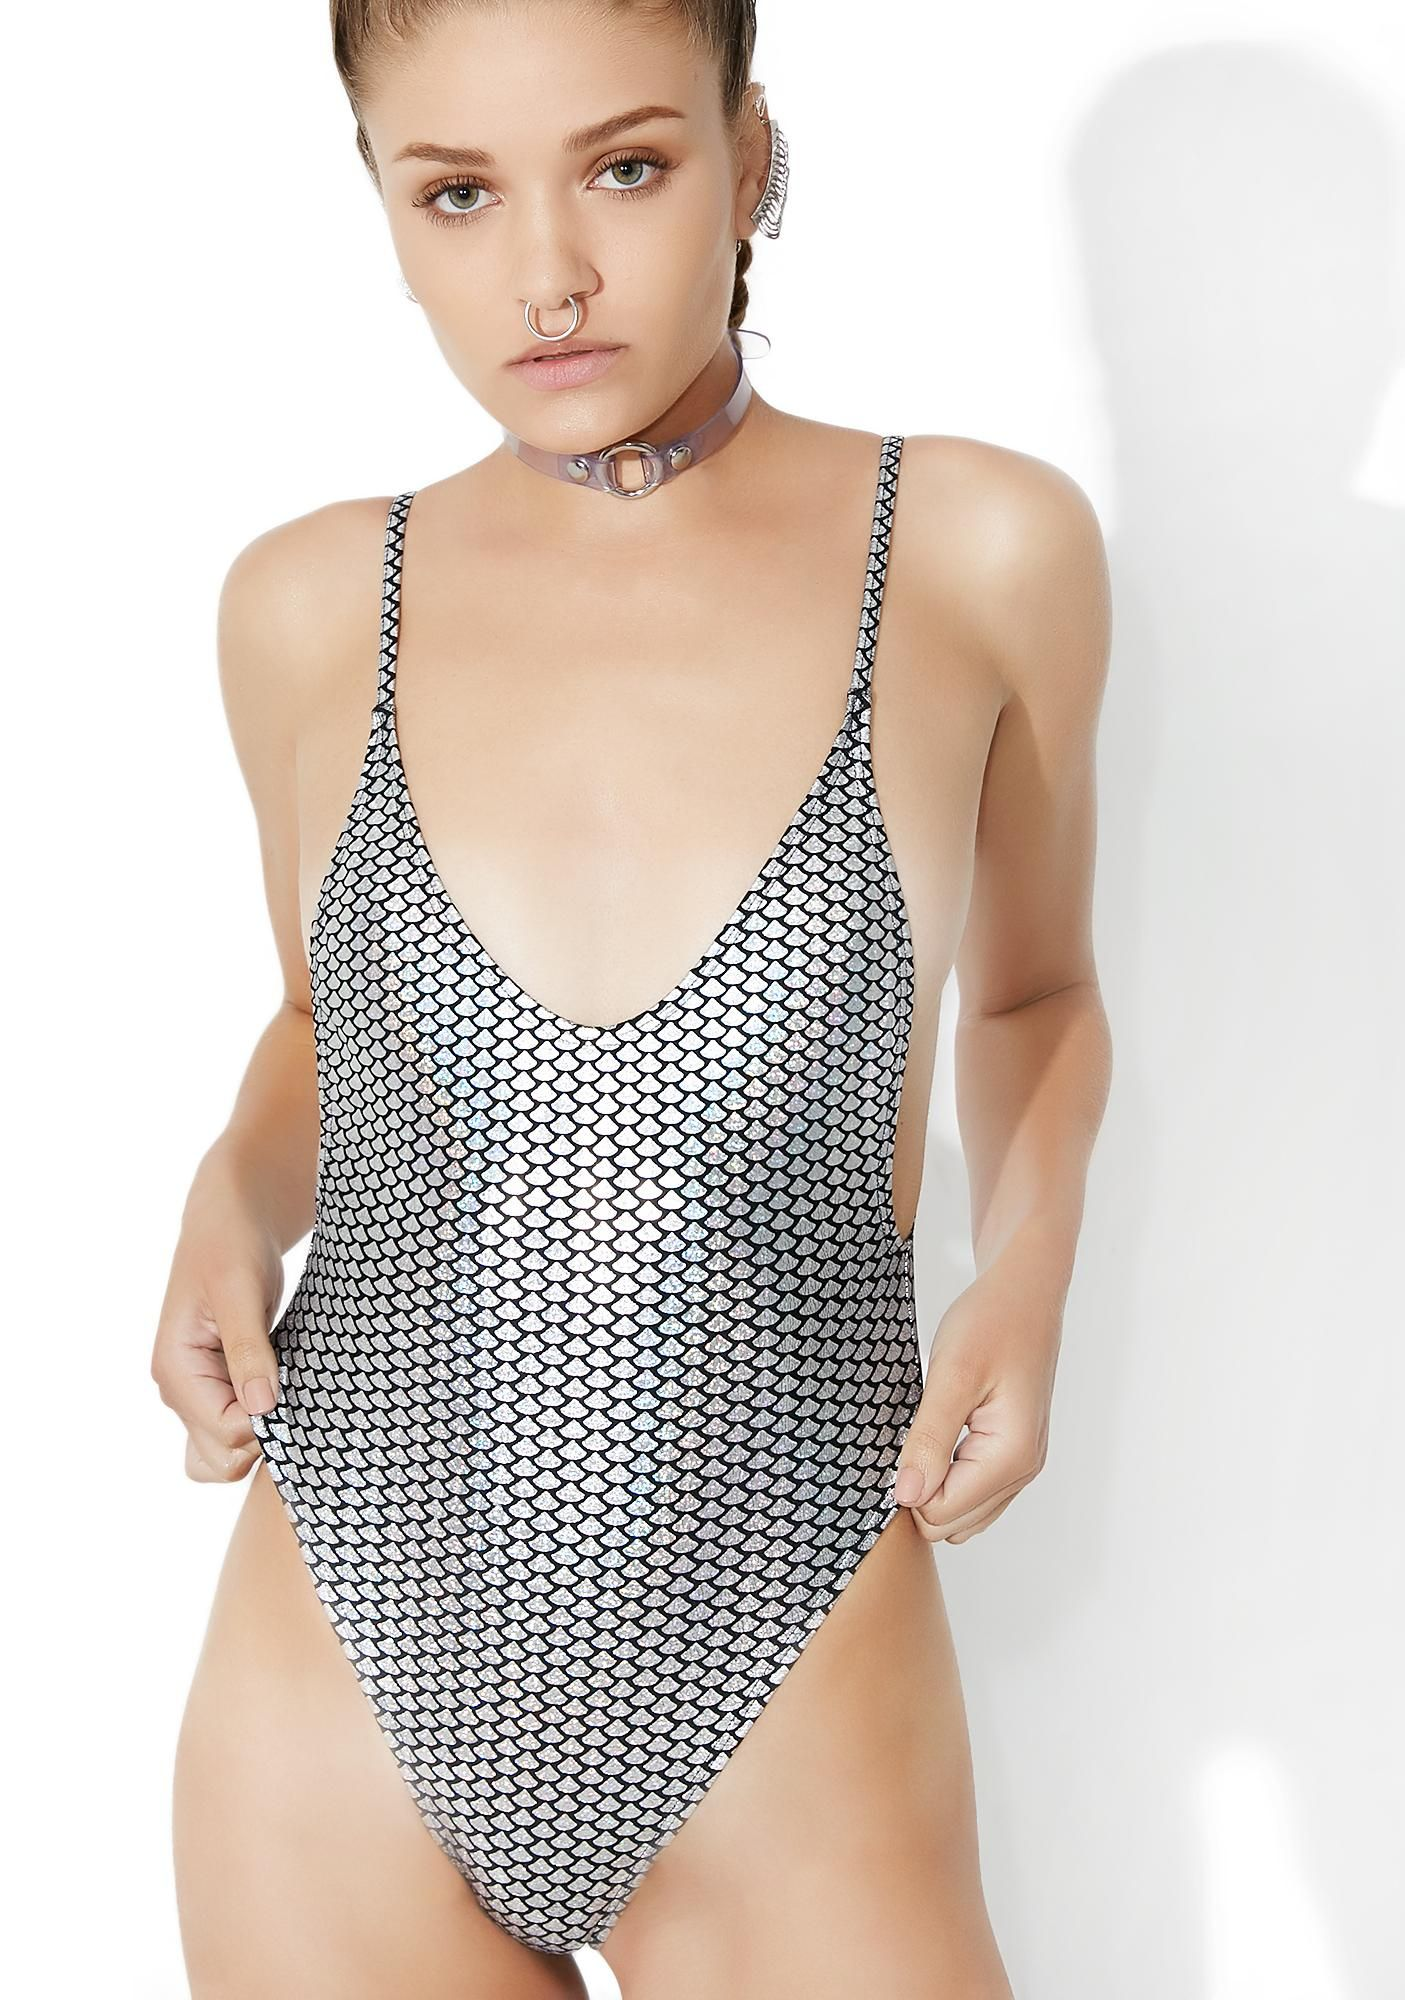 87948a82bdd82 Jaded London Cami High Leg Swimsuit this one's a real kicker, bb! Dive into